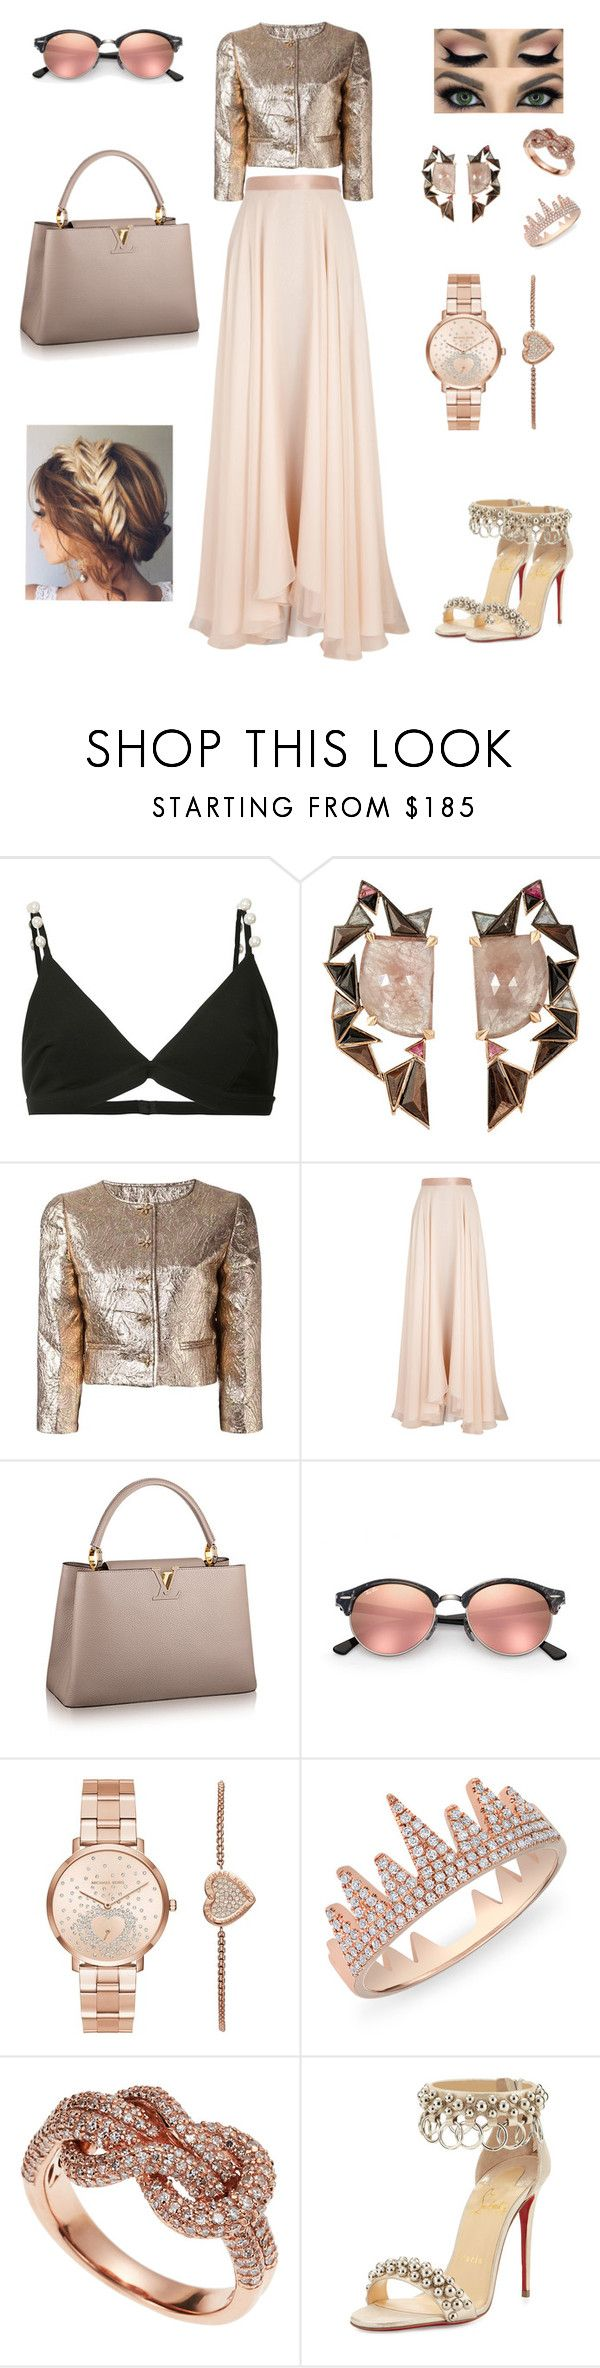 """""""Reverent Chic"""" by iffieluv ❤ liked on Polyvore featuring Givenchy, Nak Armstrong, Oscar de la Renta, Lanvin, Ray-Ban, Michael Kors, Anne Sisteron, Effy Jewelry and Christian Louboutin"""